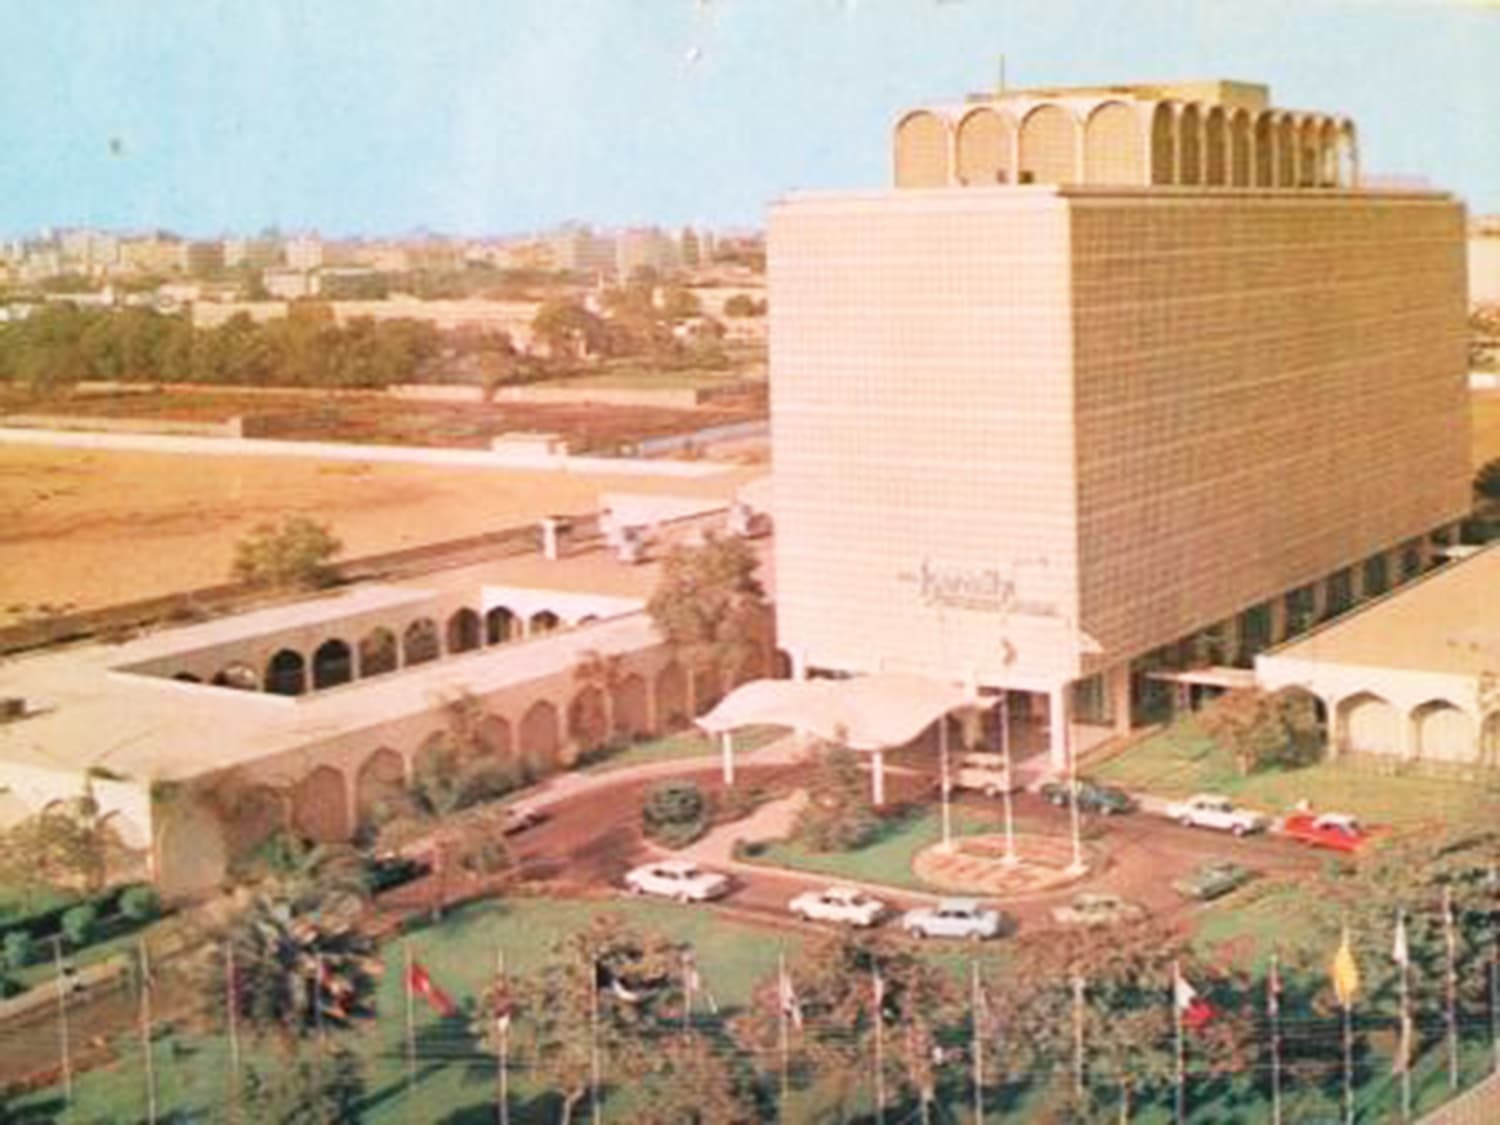 The Intercontinental Hotel, 1966.